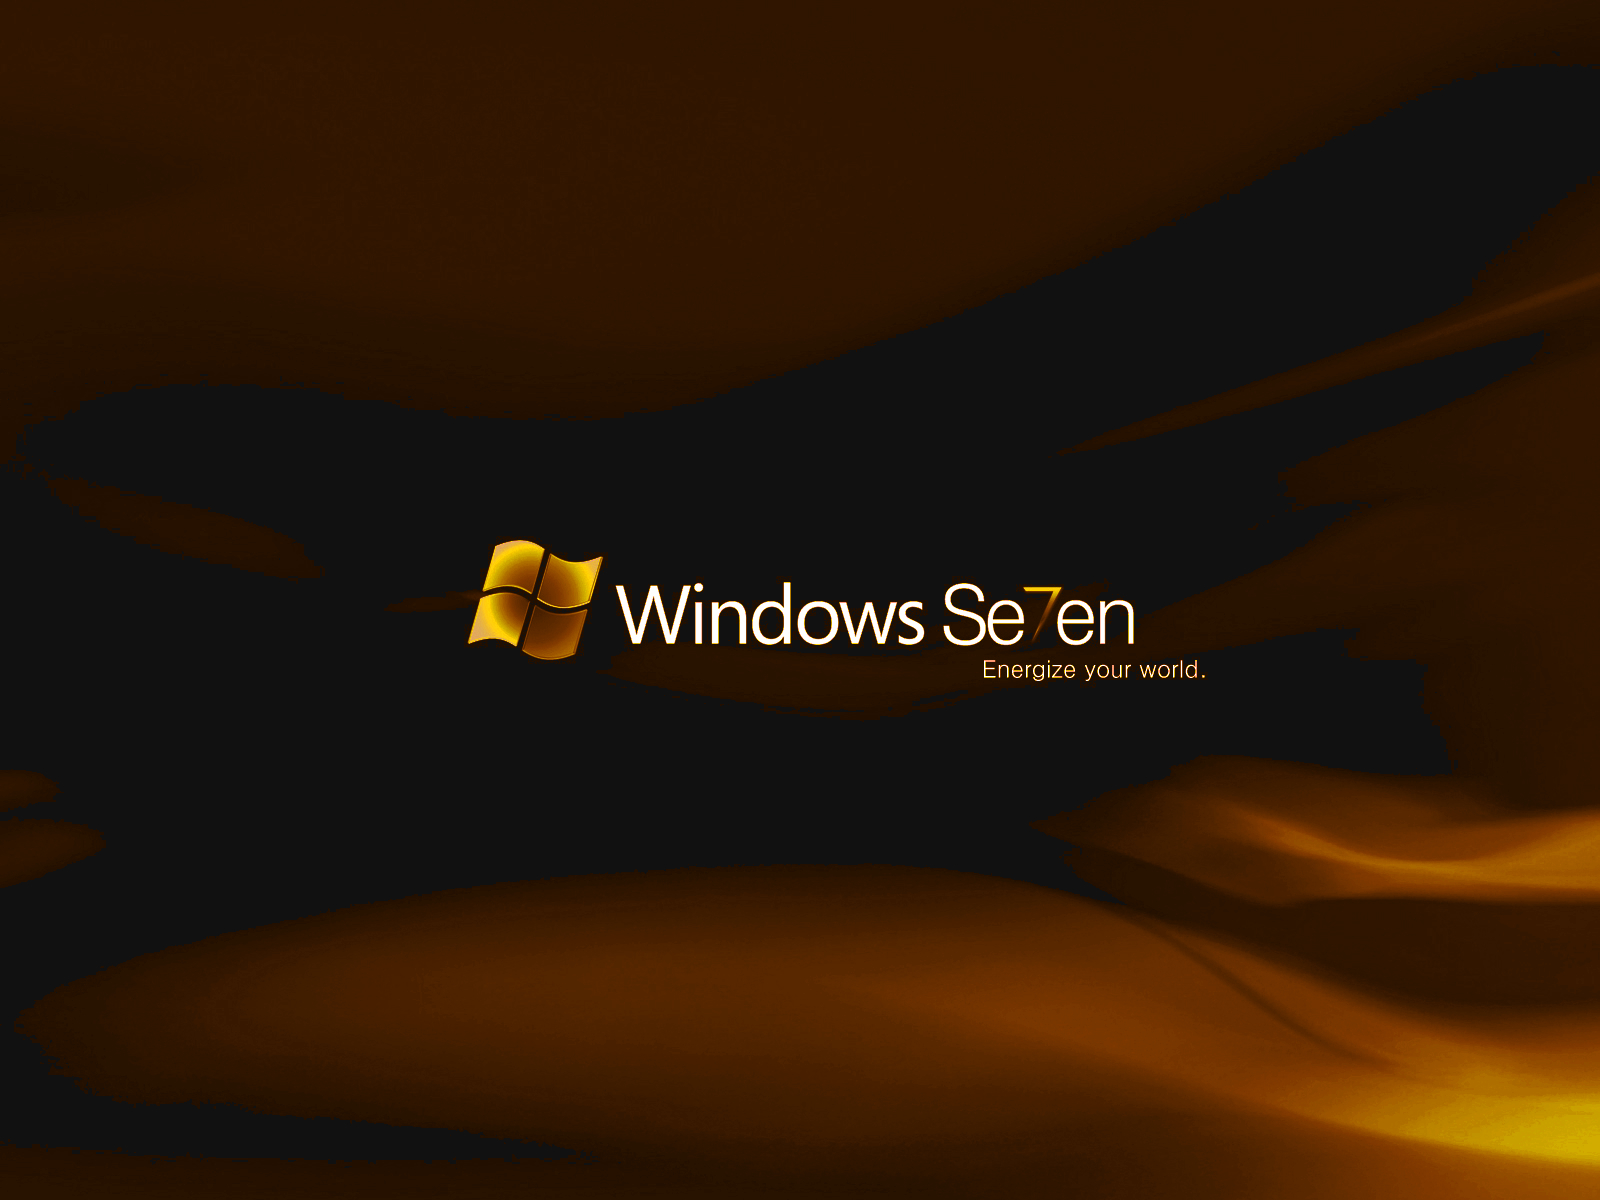 Windows 7 wallpaper 2 windows 7 energize by windows for High quality windows